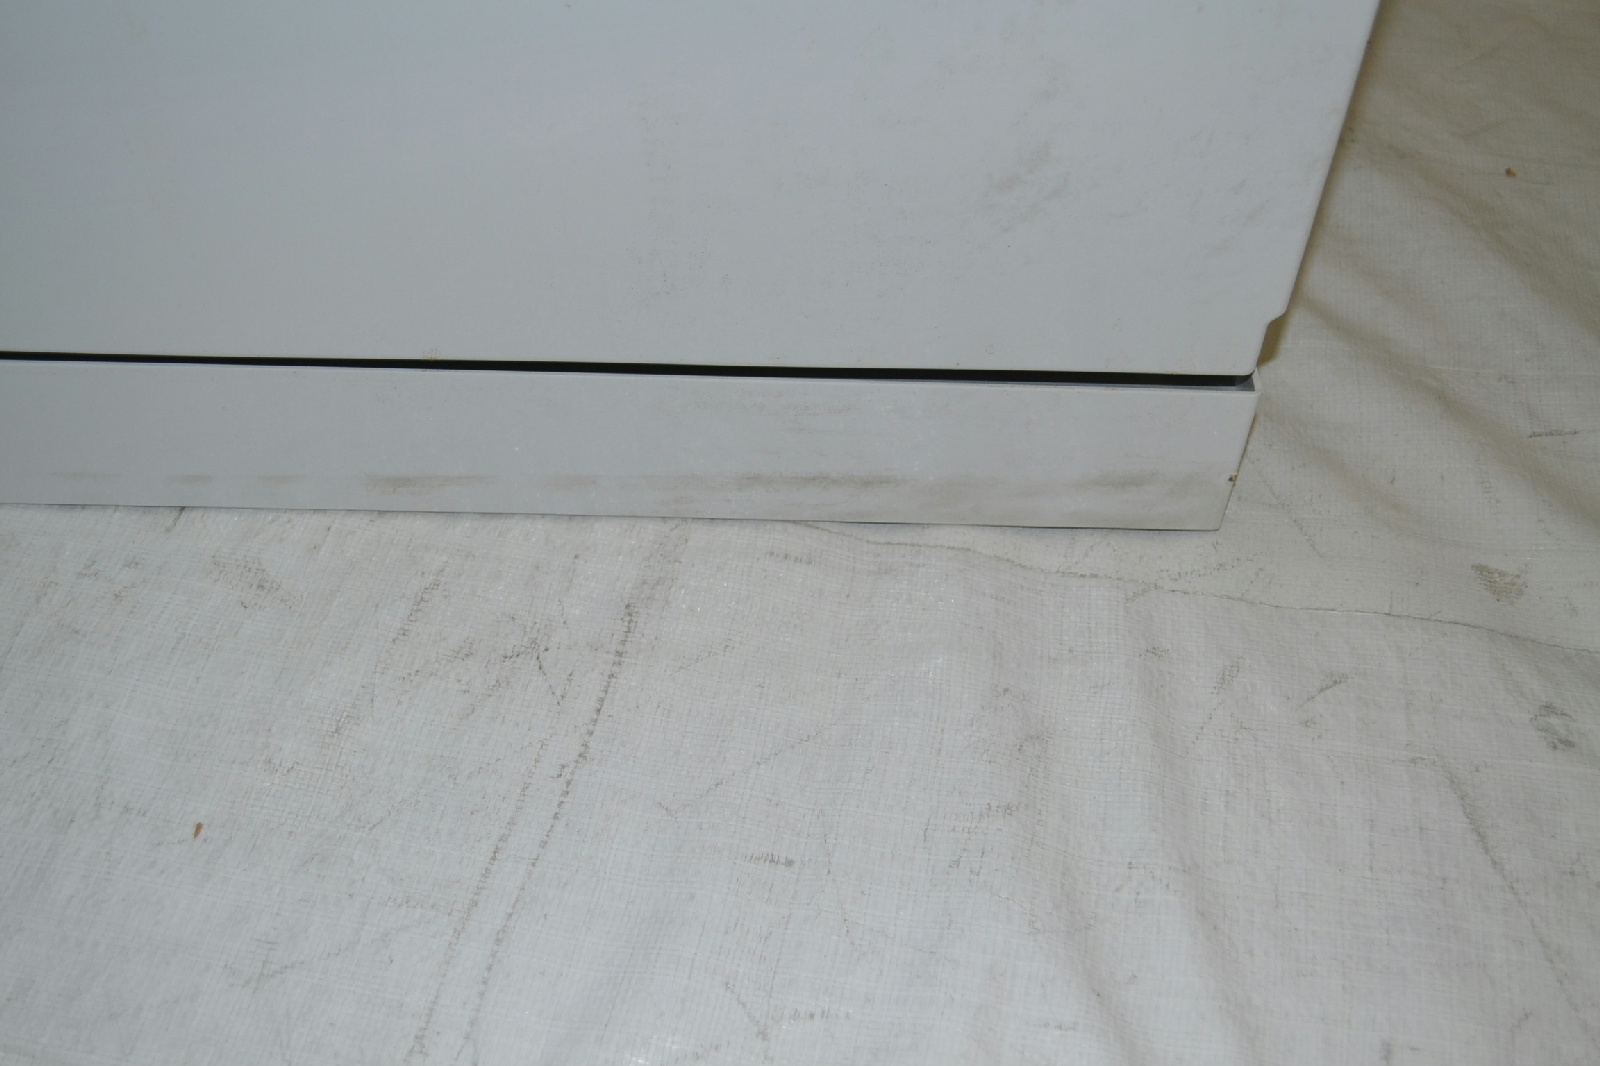 Spt Countertop Dishwasher White : Details about SPT Countertop Dishwasher, White